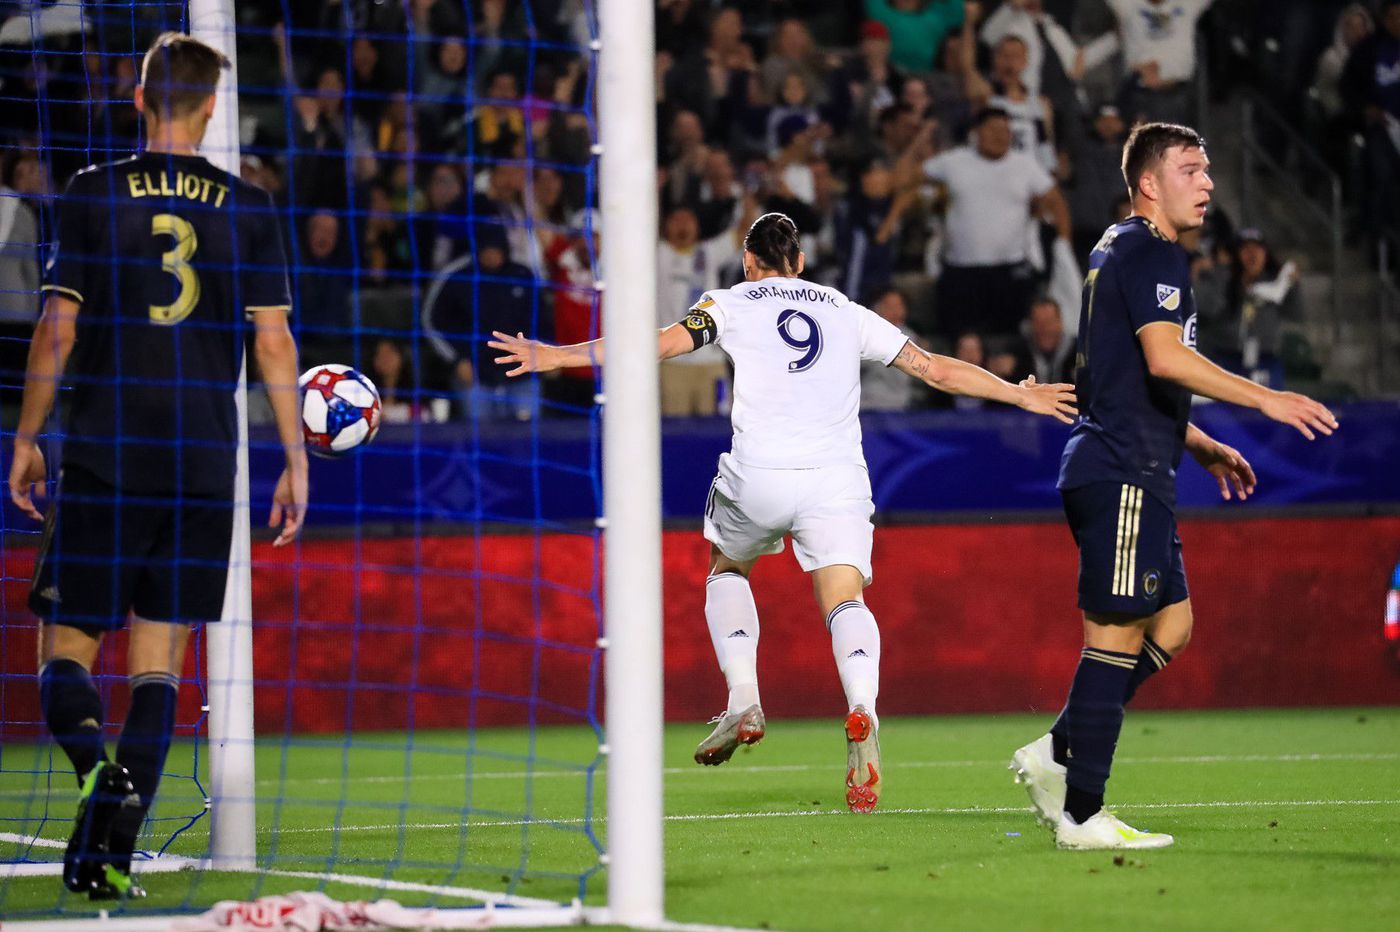 b0a44db49 Zlatan Ibrahimovic goals deal Union 2-0 loss at Los Angeles Galaxy